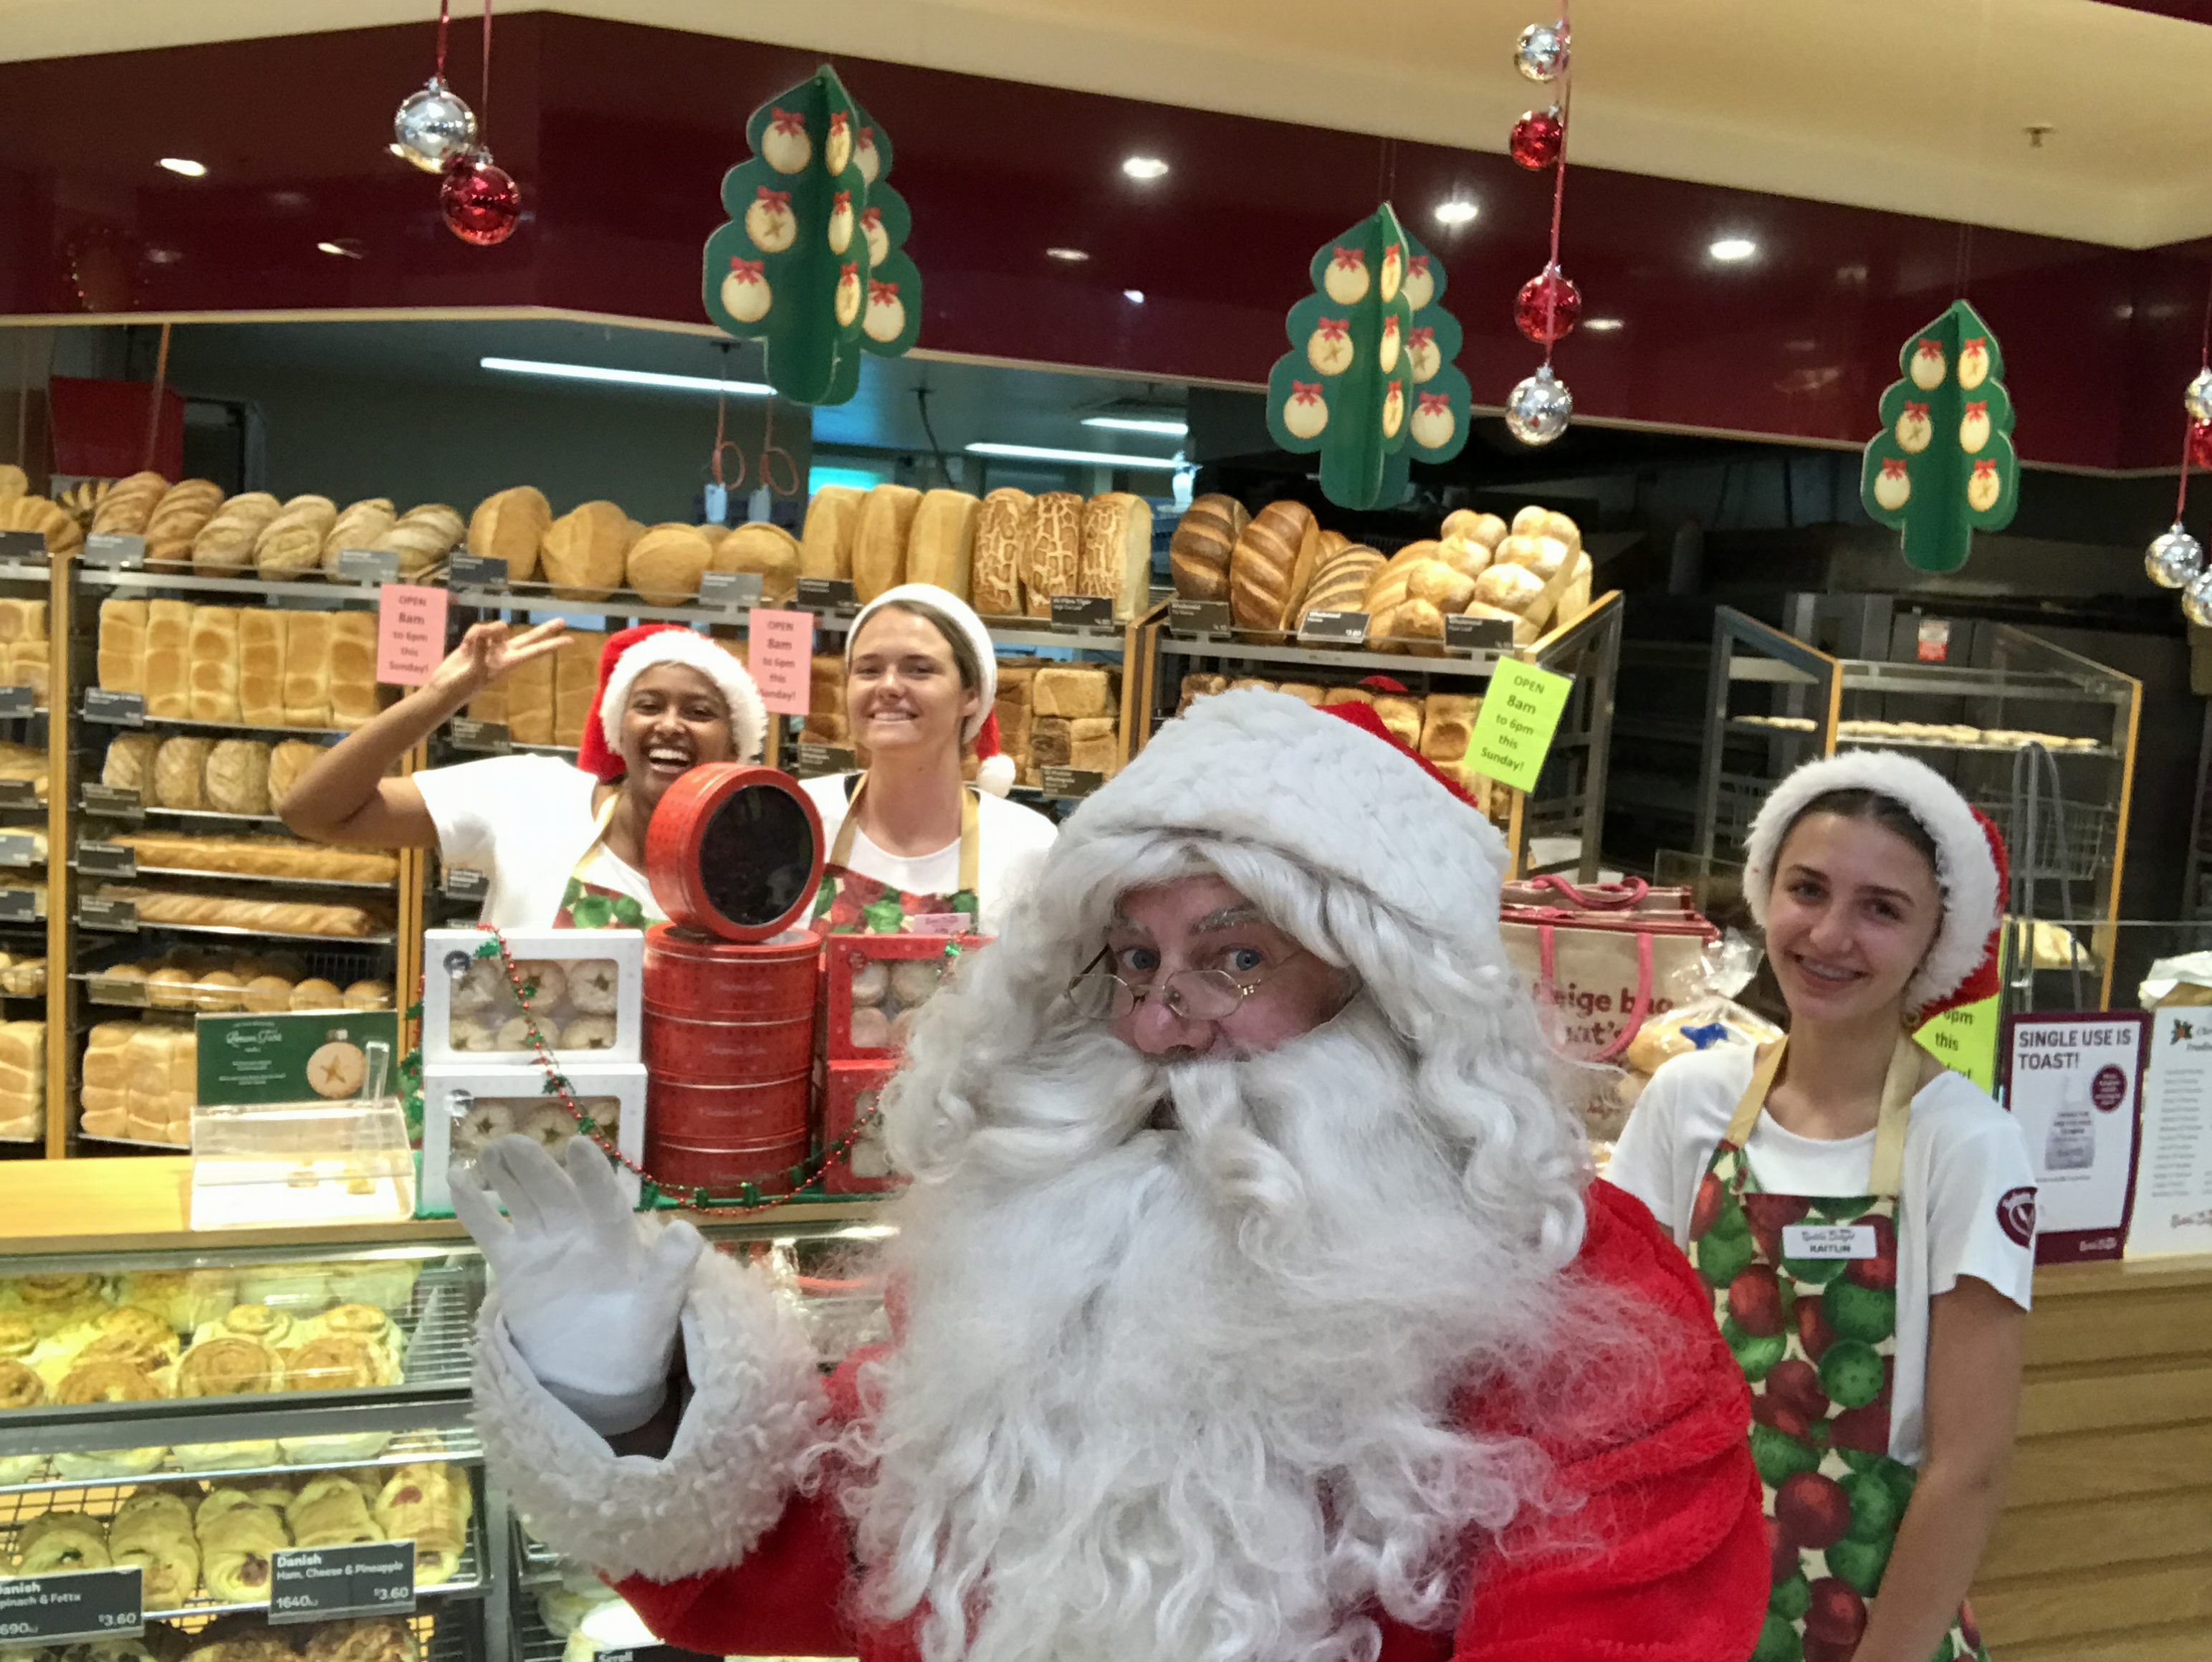 Santa at Bakers Delight